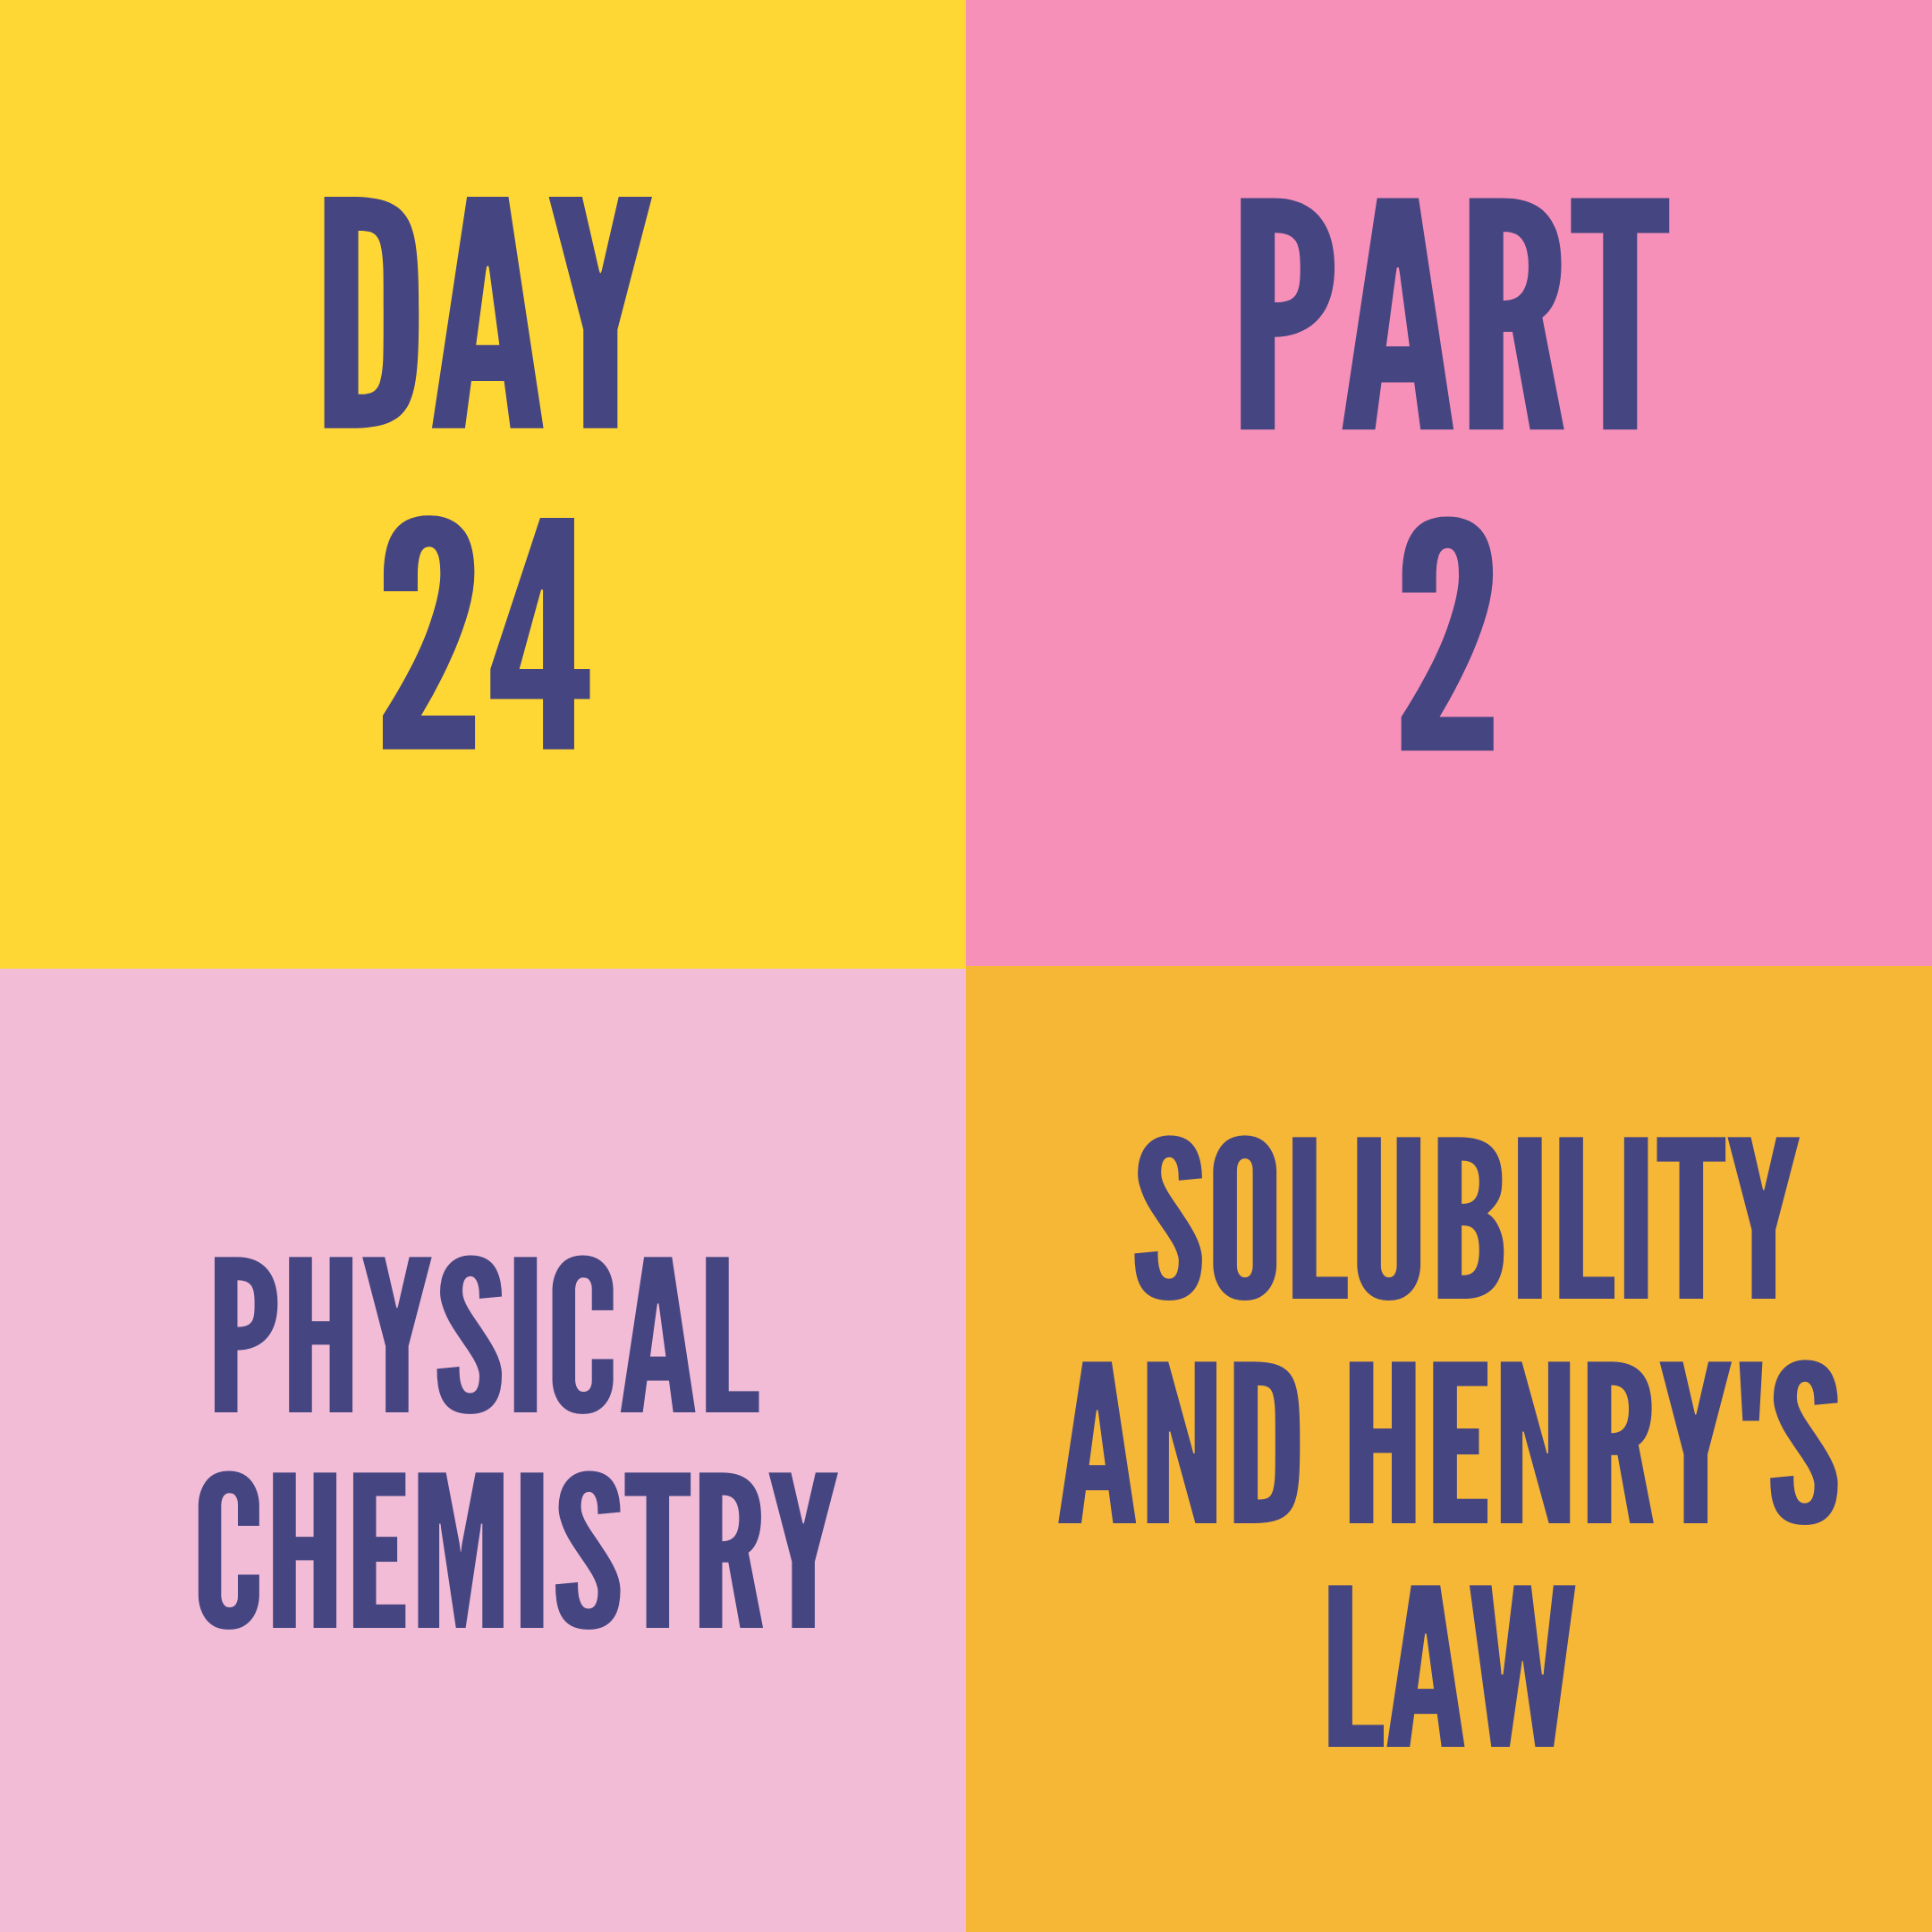 DAY-24 PART-2 SOLUBILITY AND HENRY'S LAW